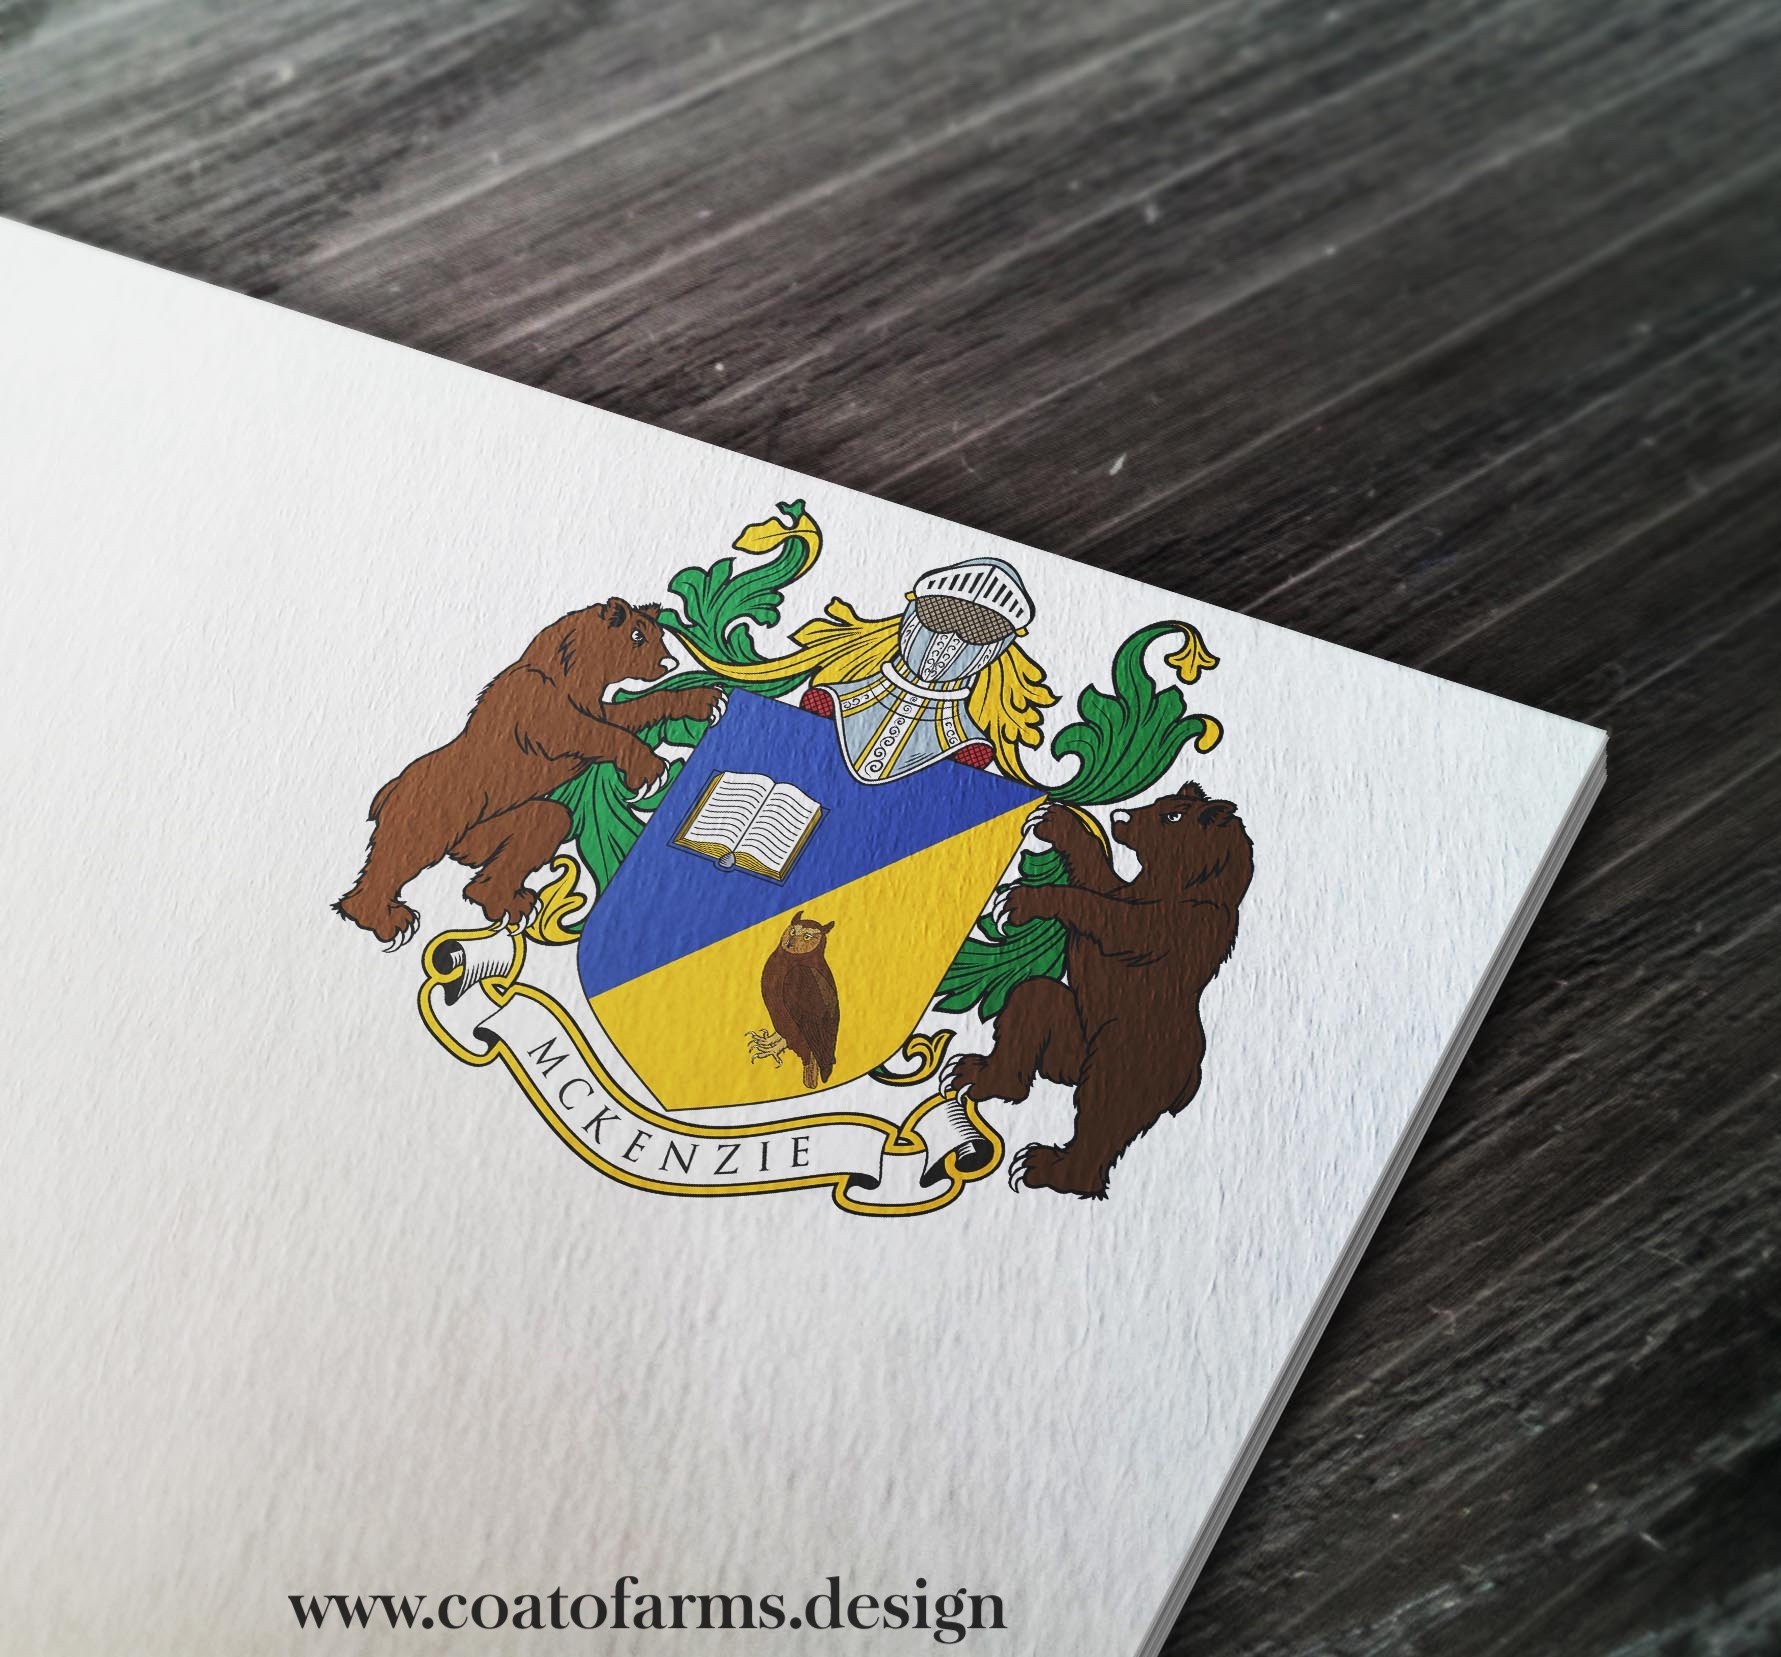 Coat of arms I designed for McKenzie family of lawyers and accountants, USA